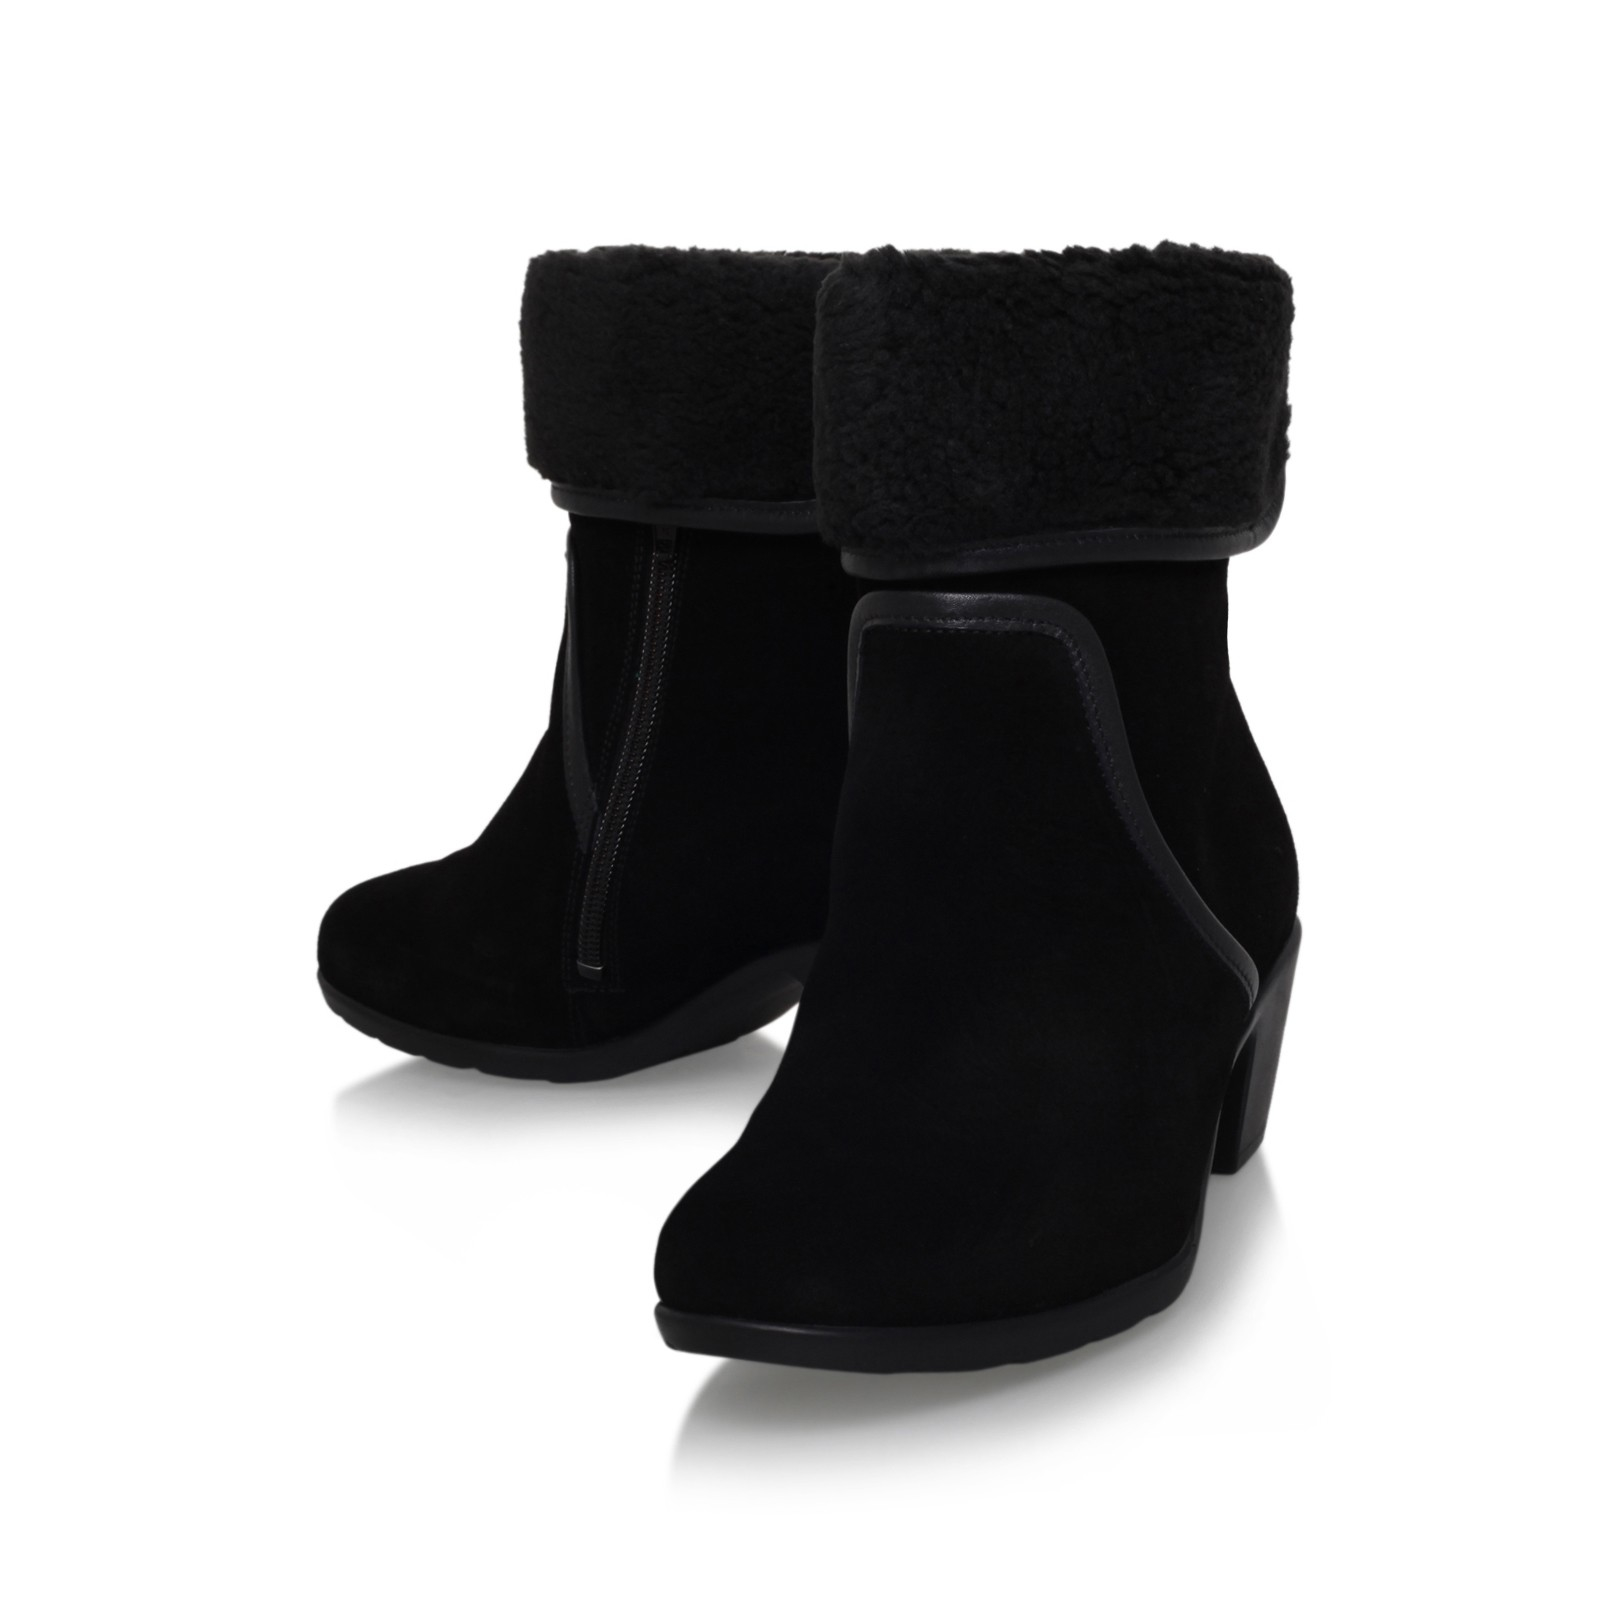 Carvela Kurt Geiger Leather Robin Boots With Ankle Cuff in Black